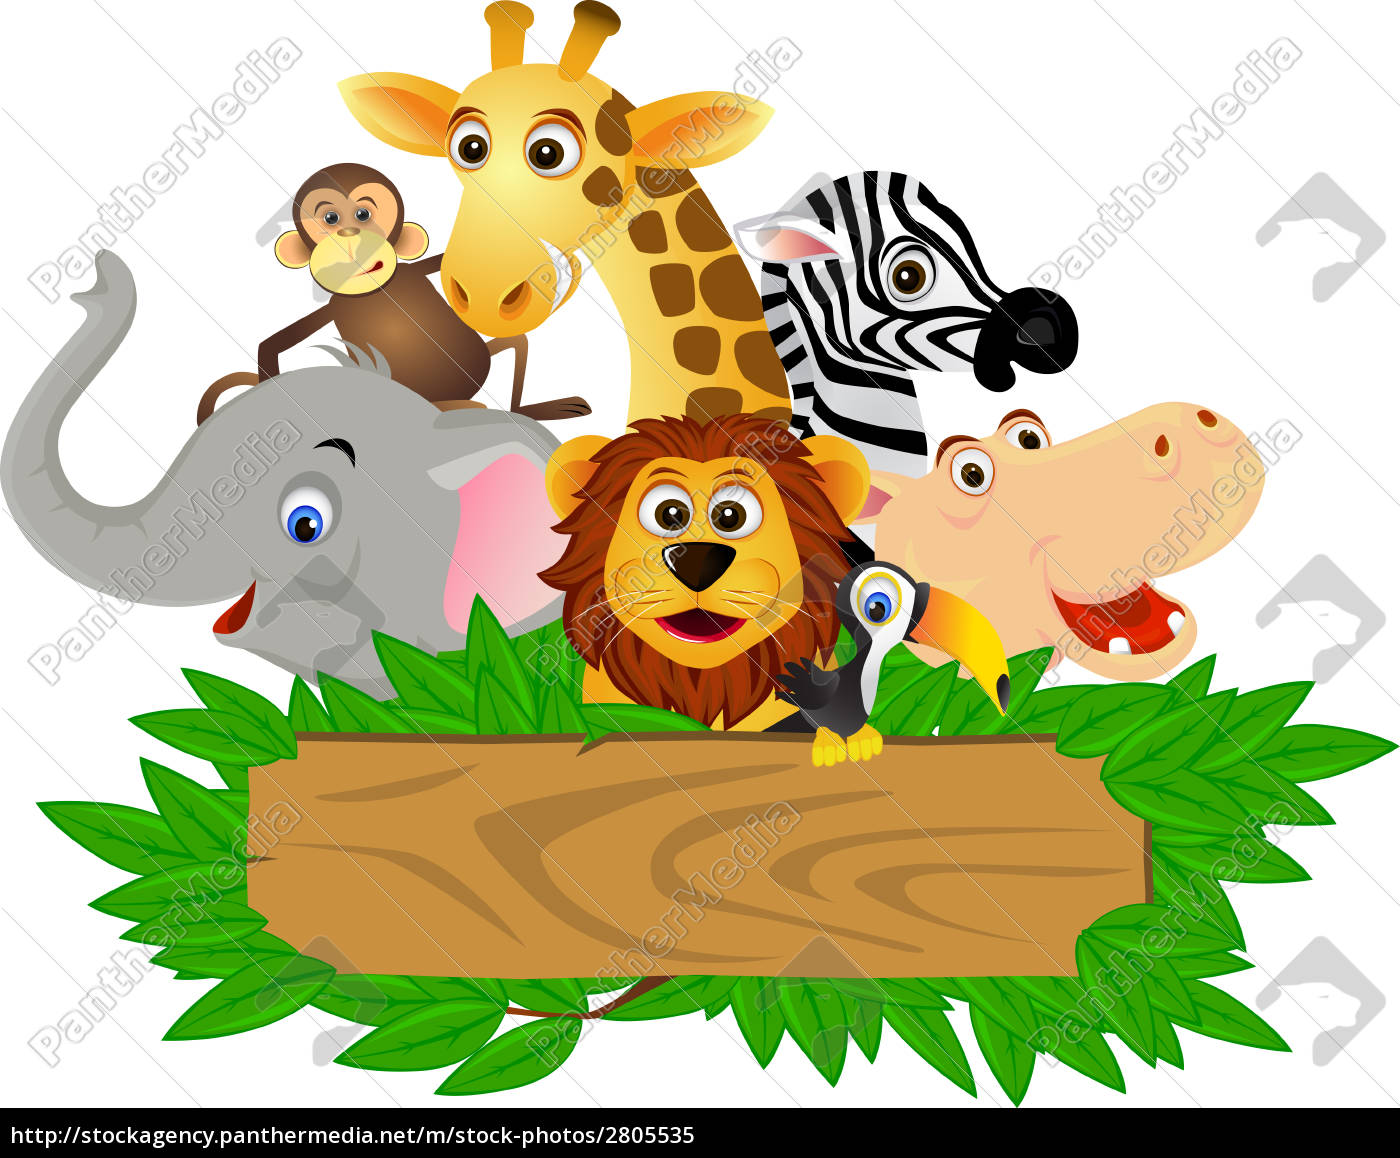 cartoon, animal - 2805535